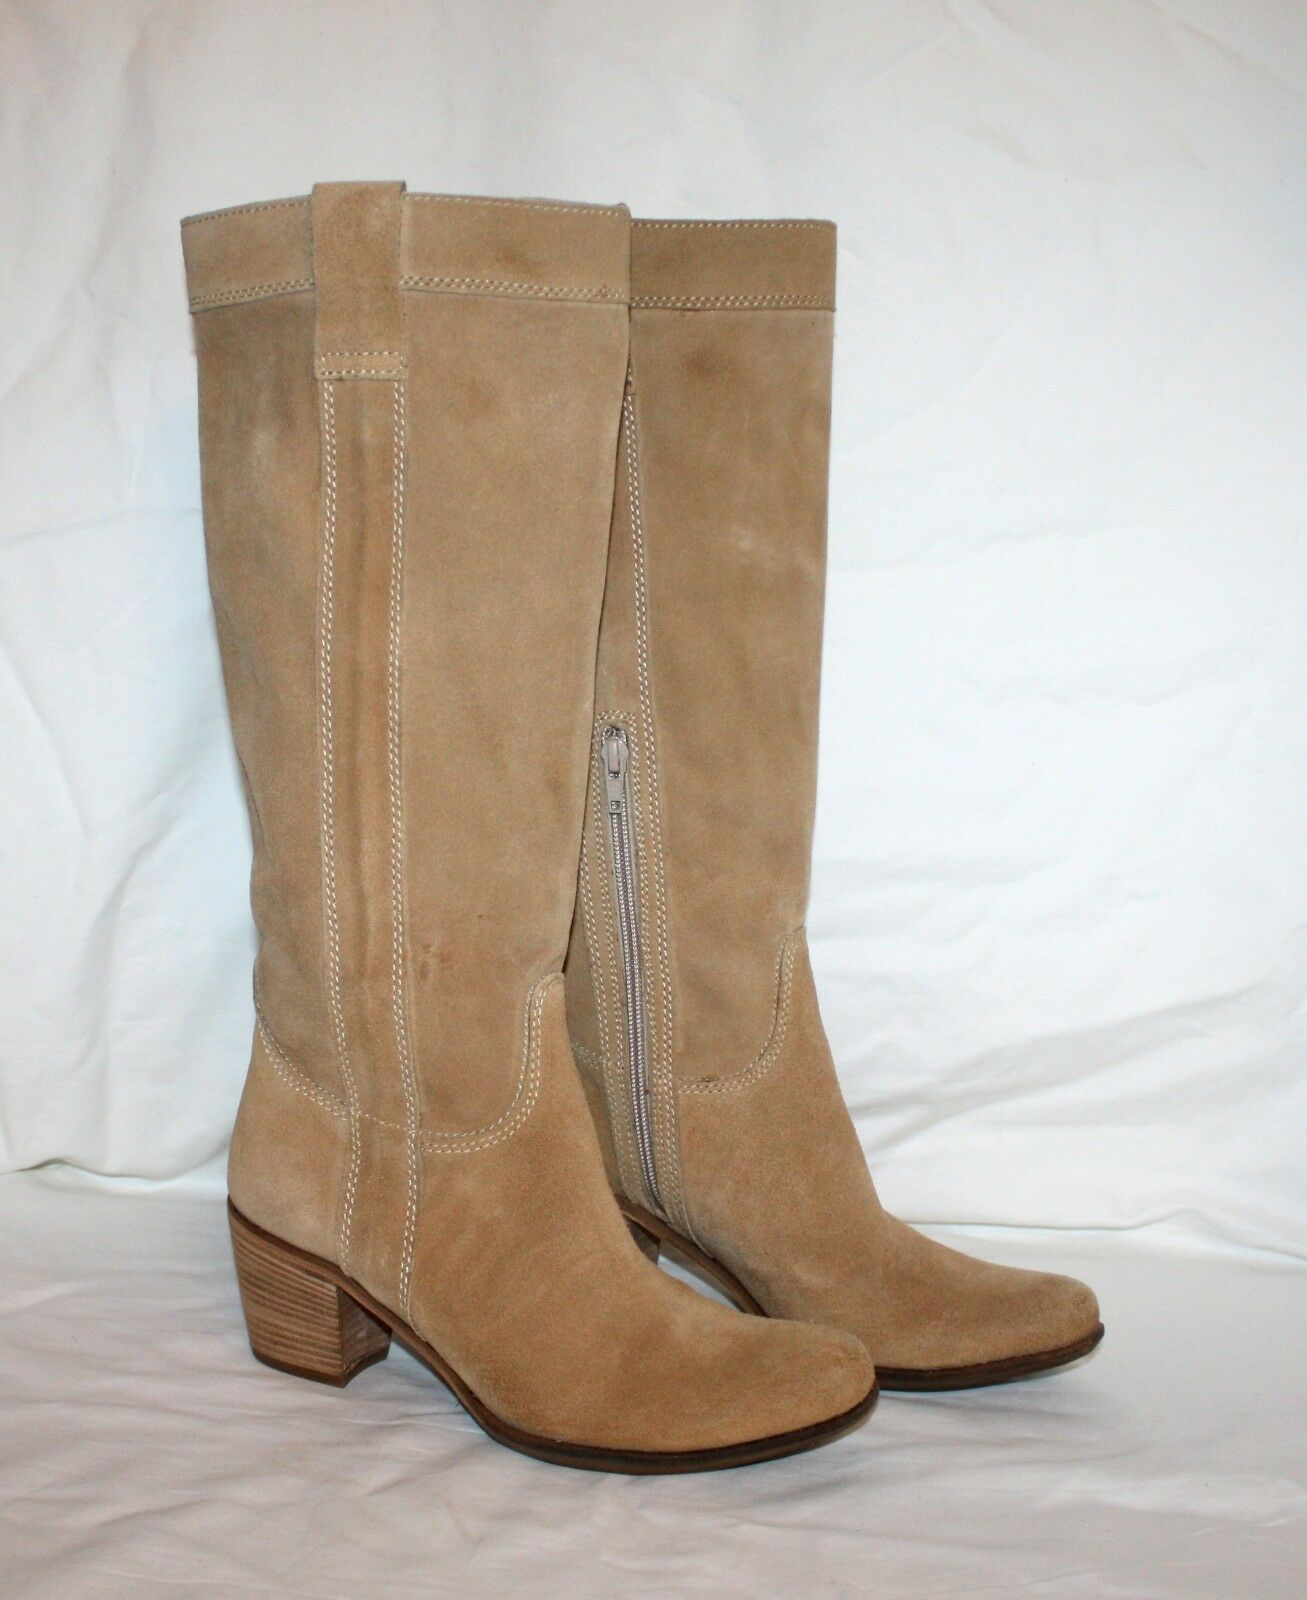 Manas Design Women's Beige Suede High Knee Boots Size 37 7